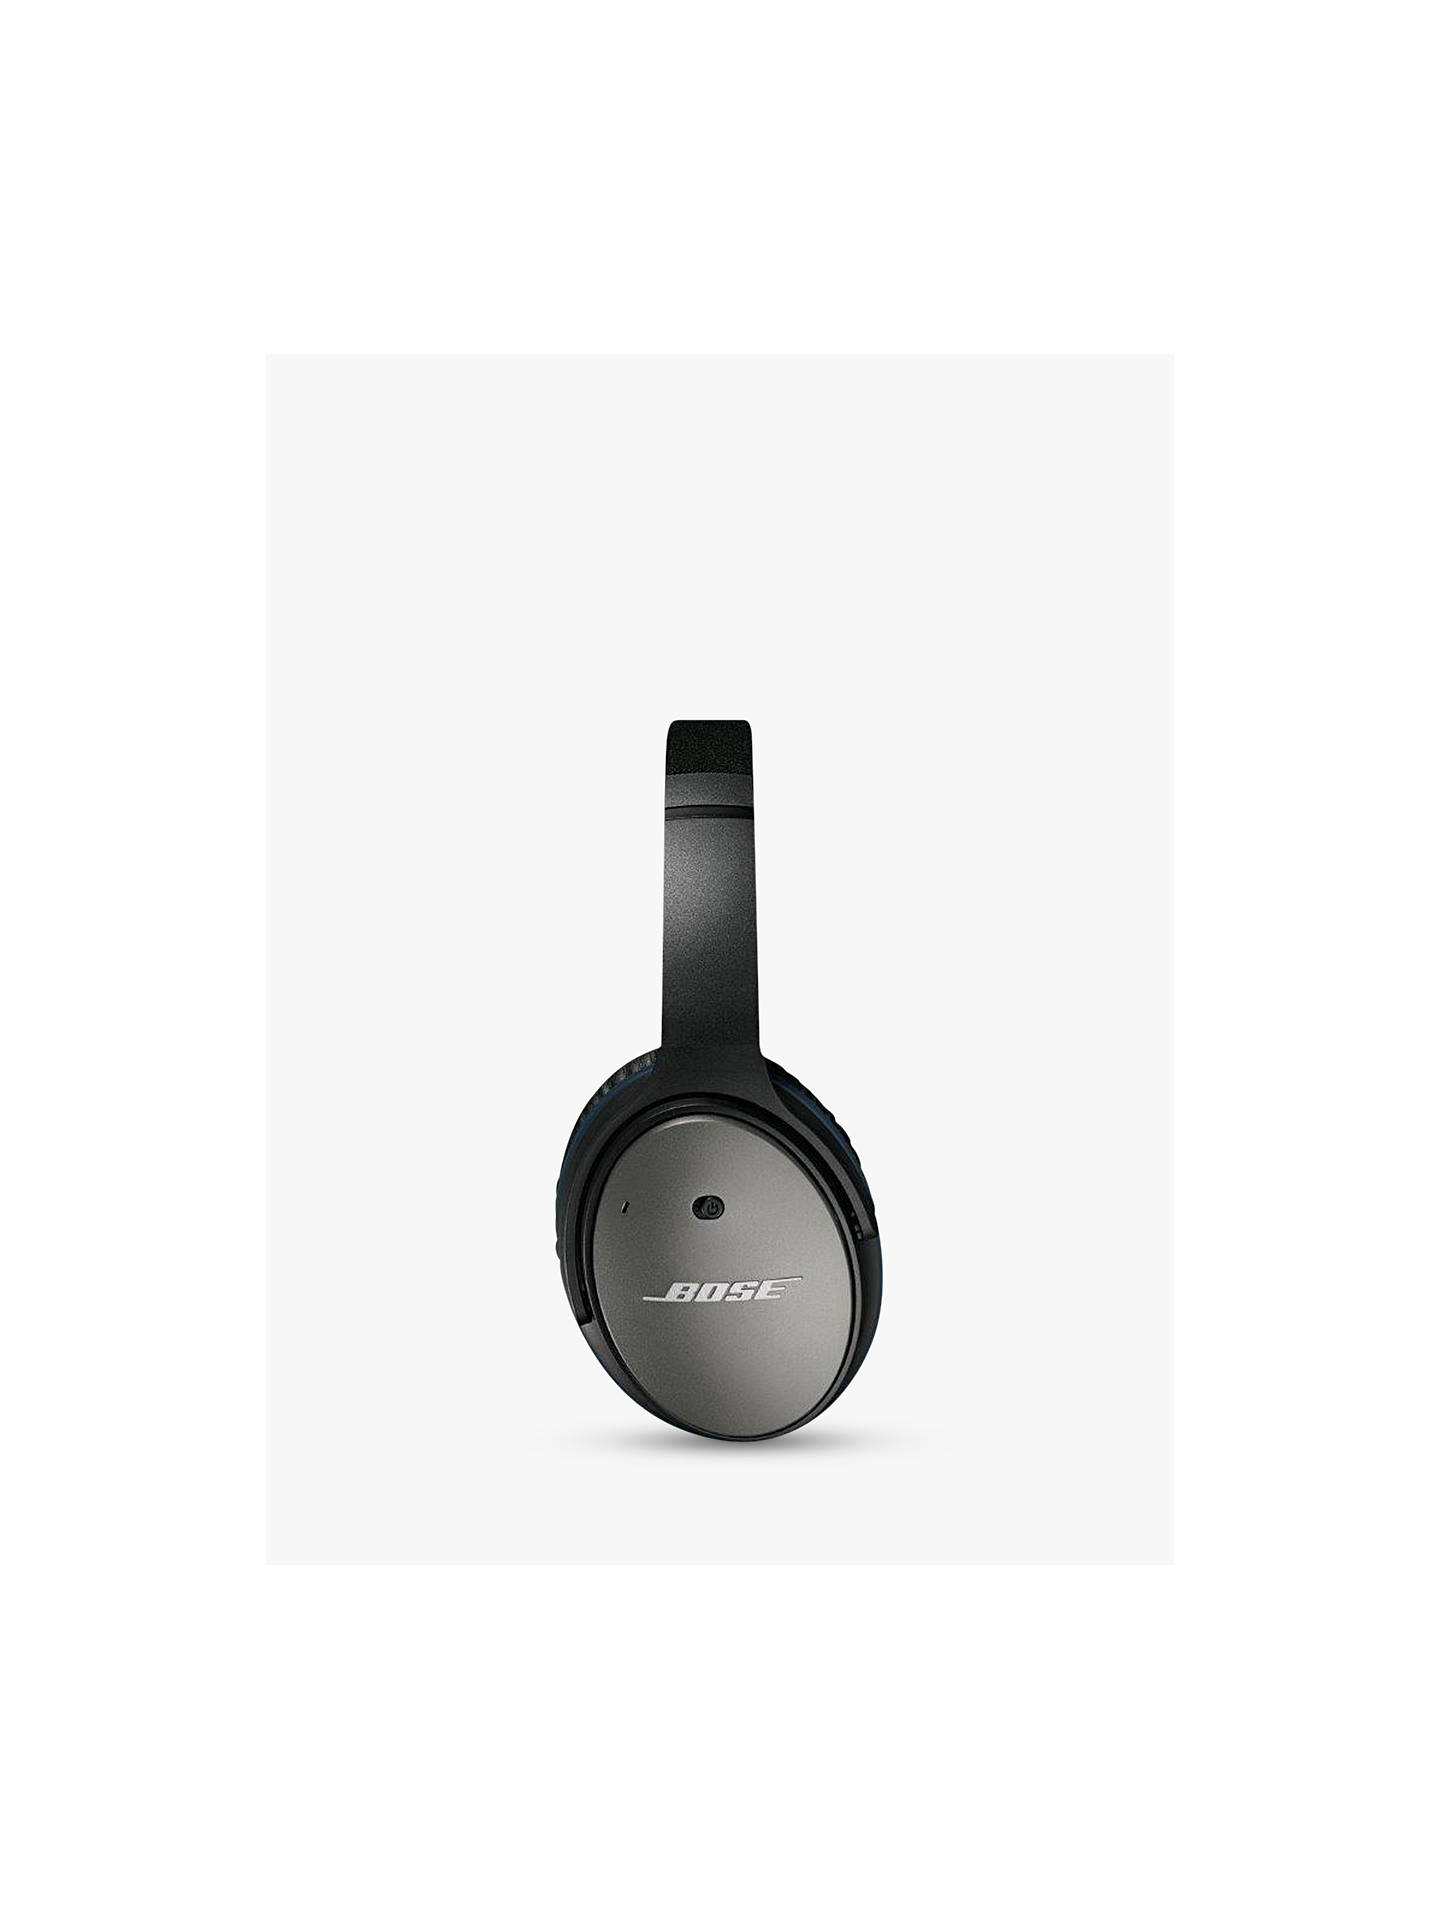 Buy Bose® QuietComfort® Noise Cancelling® QC25 Over-Ear Headphones For iOS/ Apple iPhone or iPod, Black Online at johnlewis.com